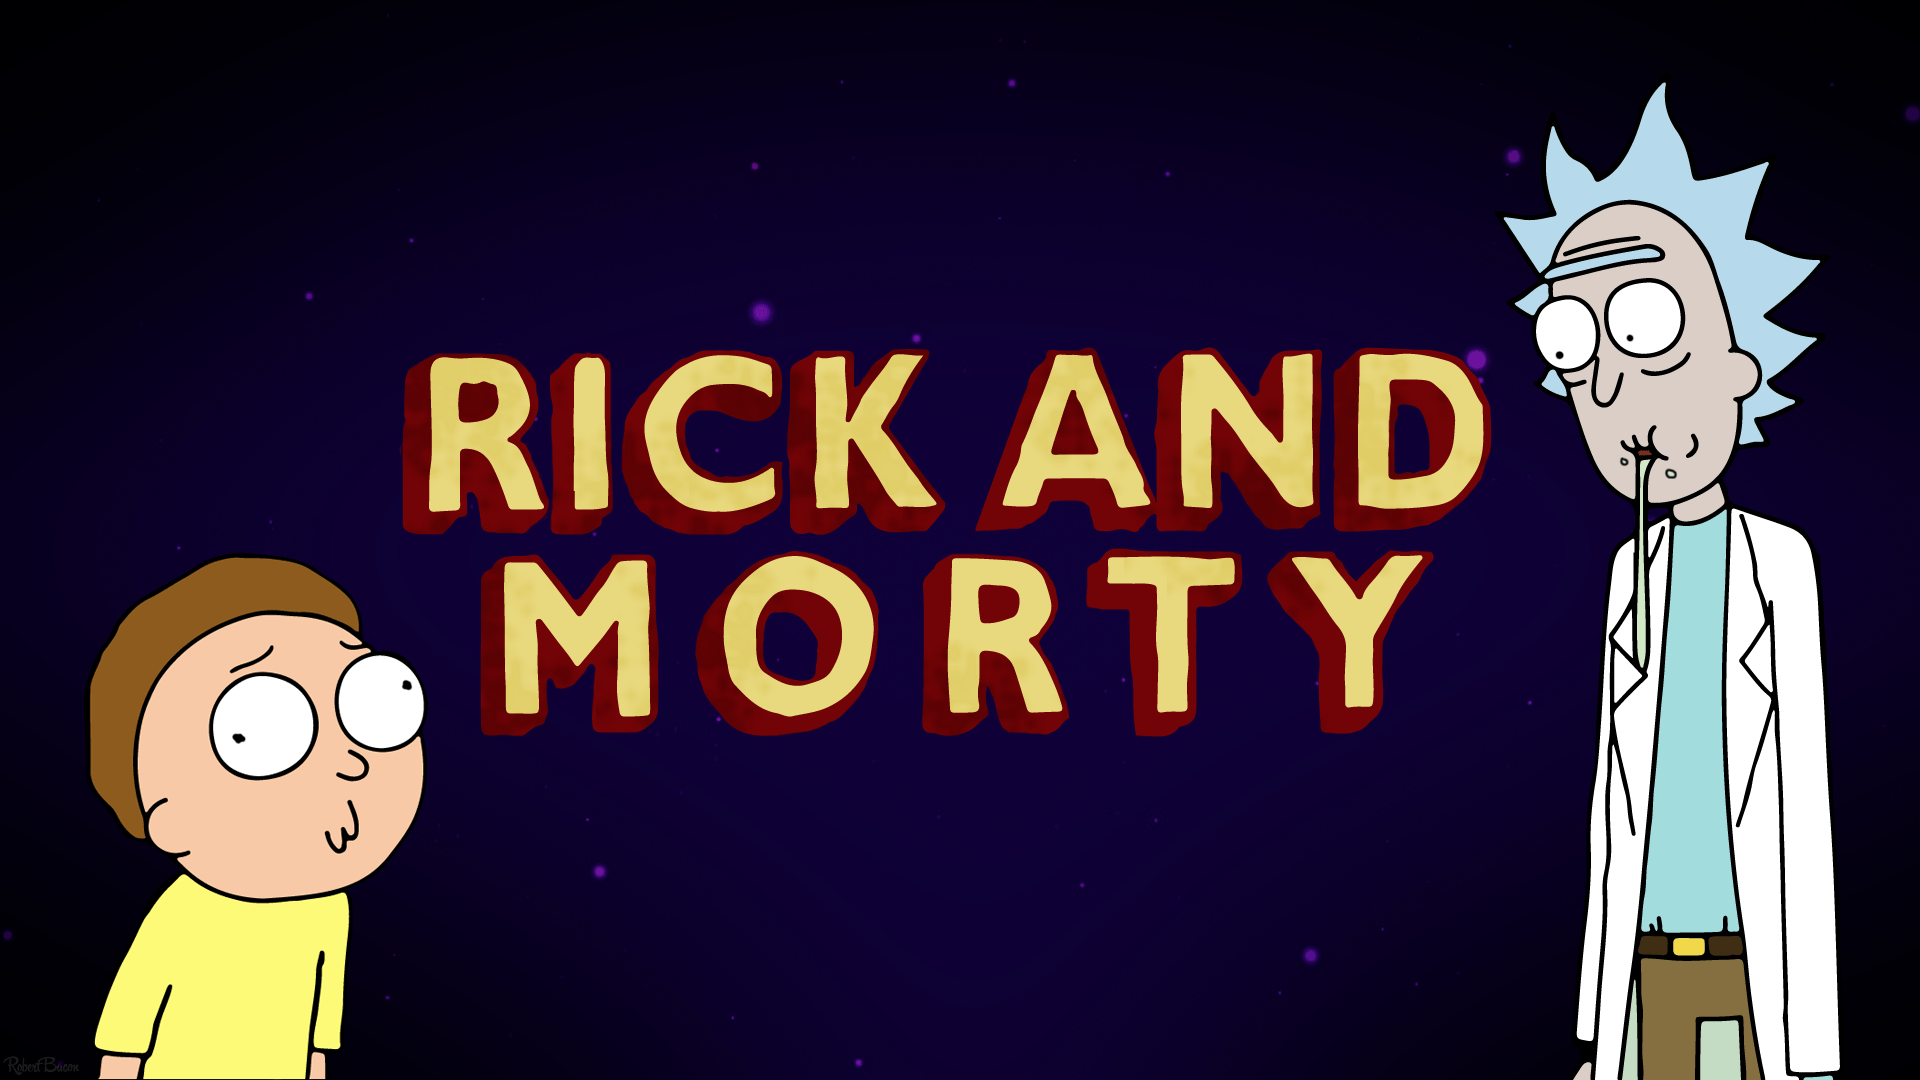 I made myself a Rick and Morty wallpaper. I thought I would share ...